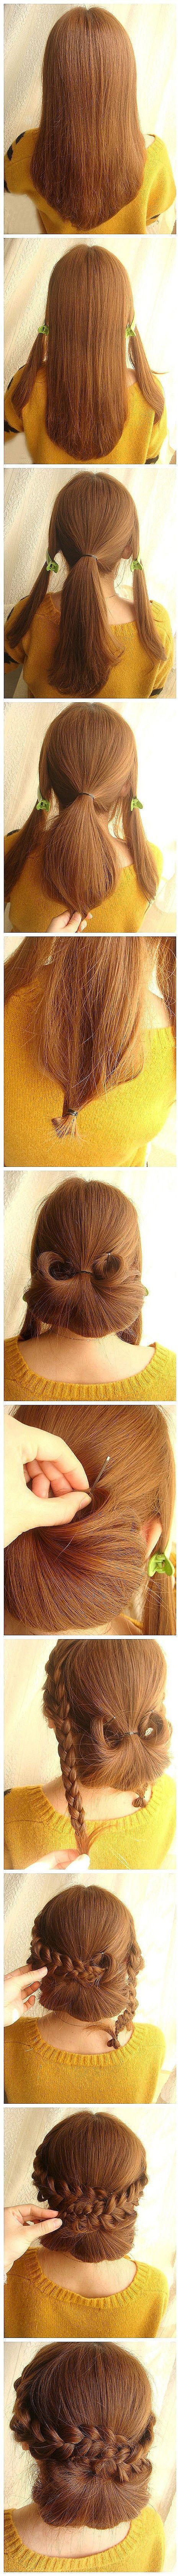 25 unique victorian hairstyles ideas on pinterest victorian 17 ways to make the vintage hairstyles ccuart Image collections